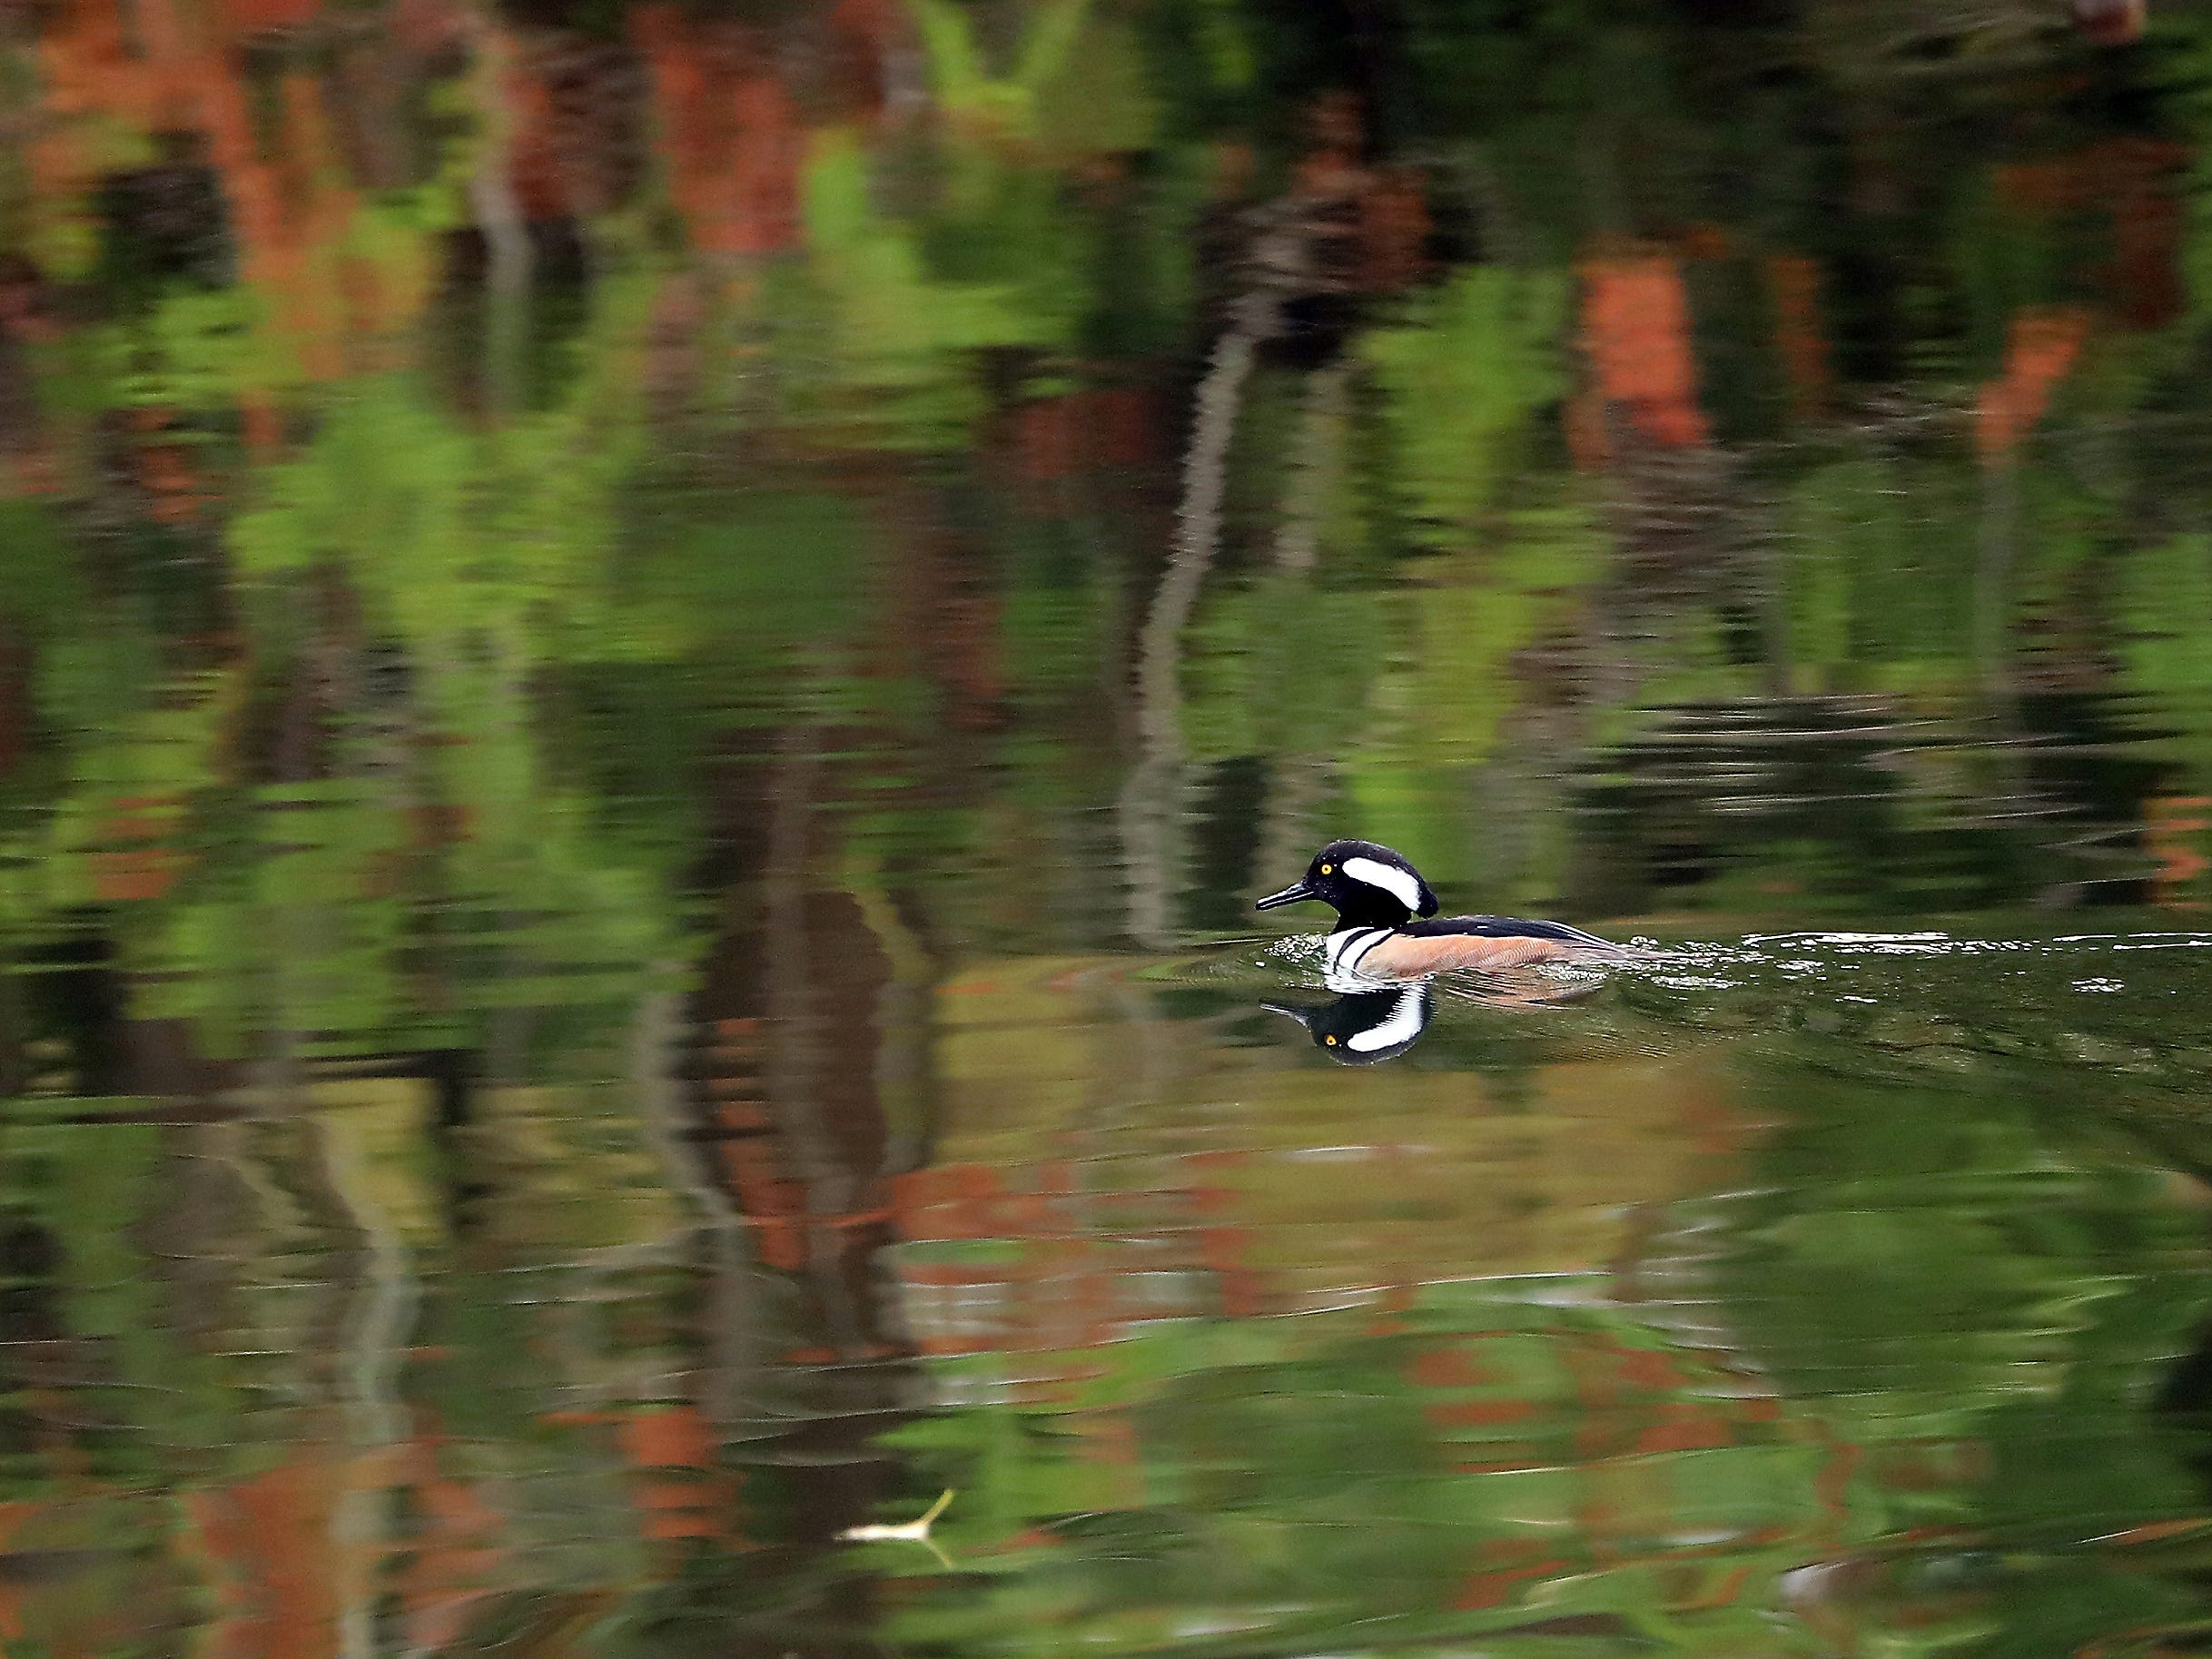 A hooded merganser paddles through the reflective waters of the Seabeck Conference Center lagoon in Seabeck, Washington on Thursday, November 8, 2018.